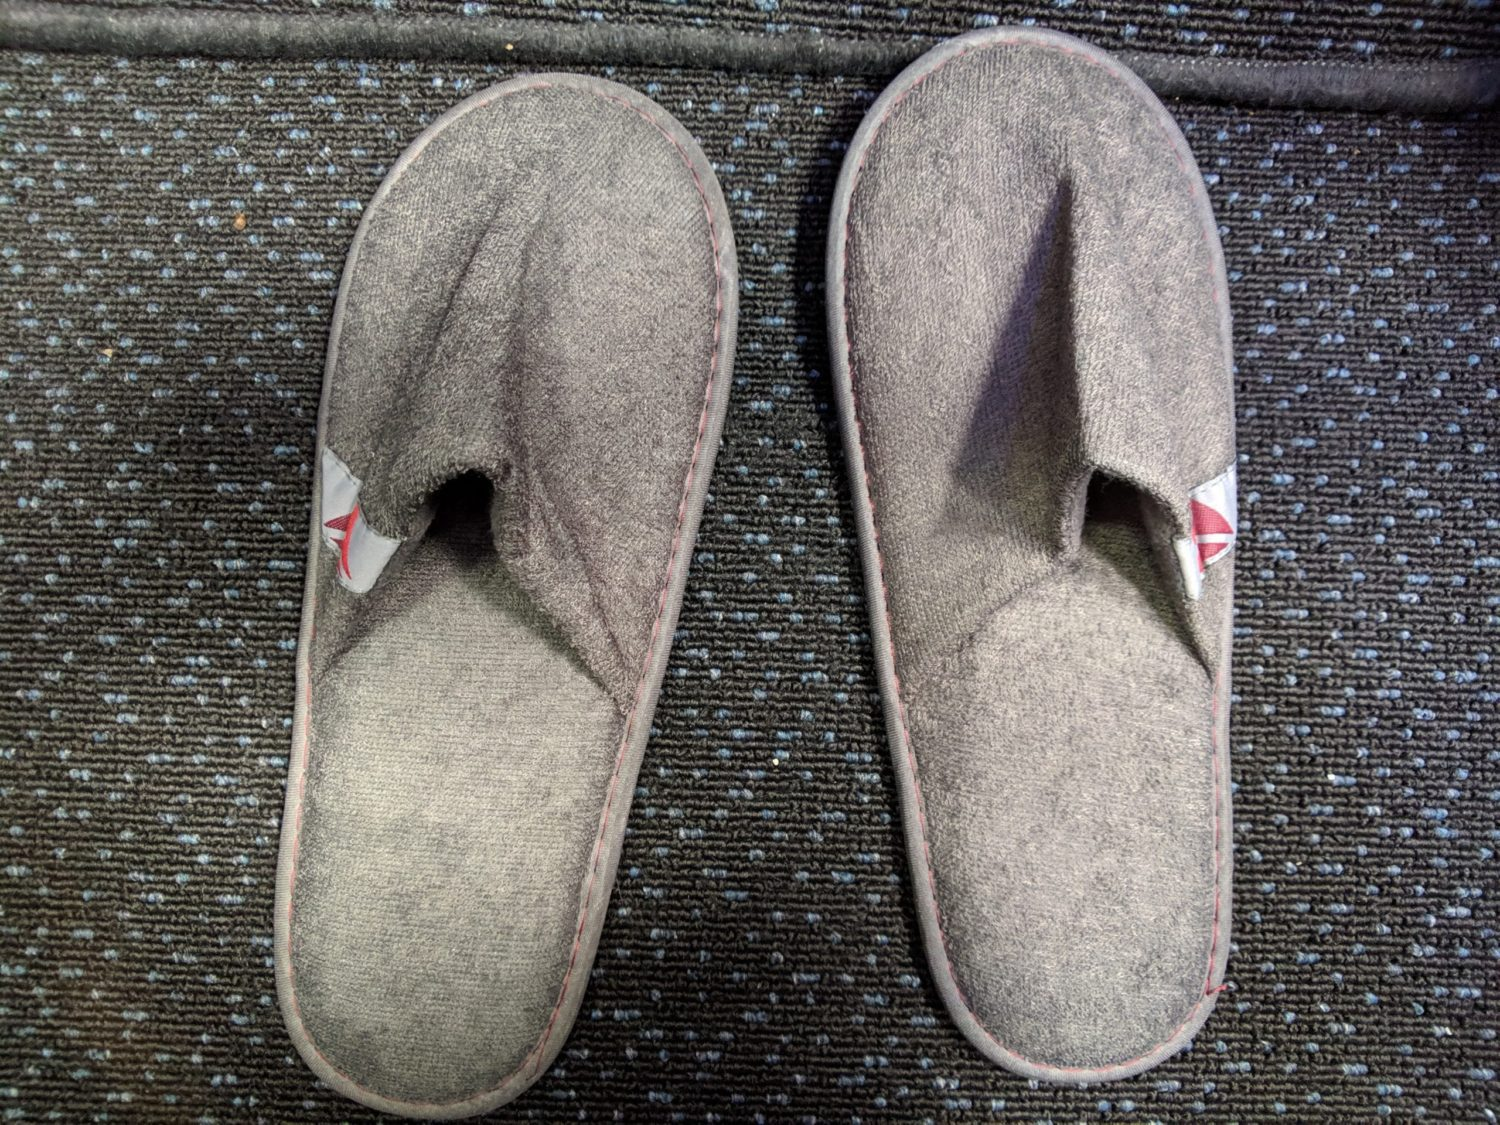 Delta One suites slippers